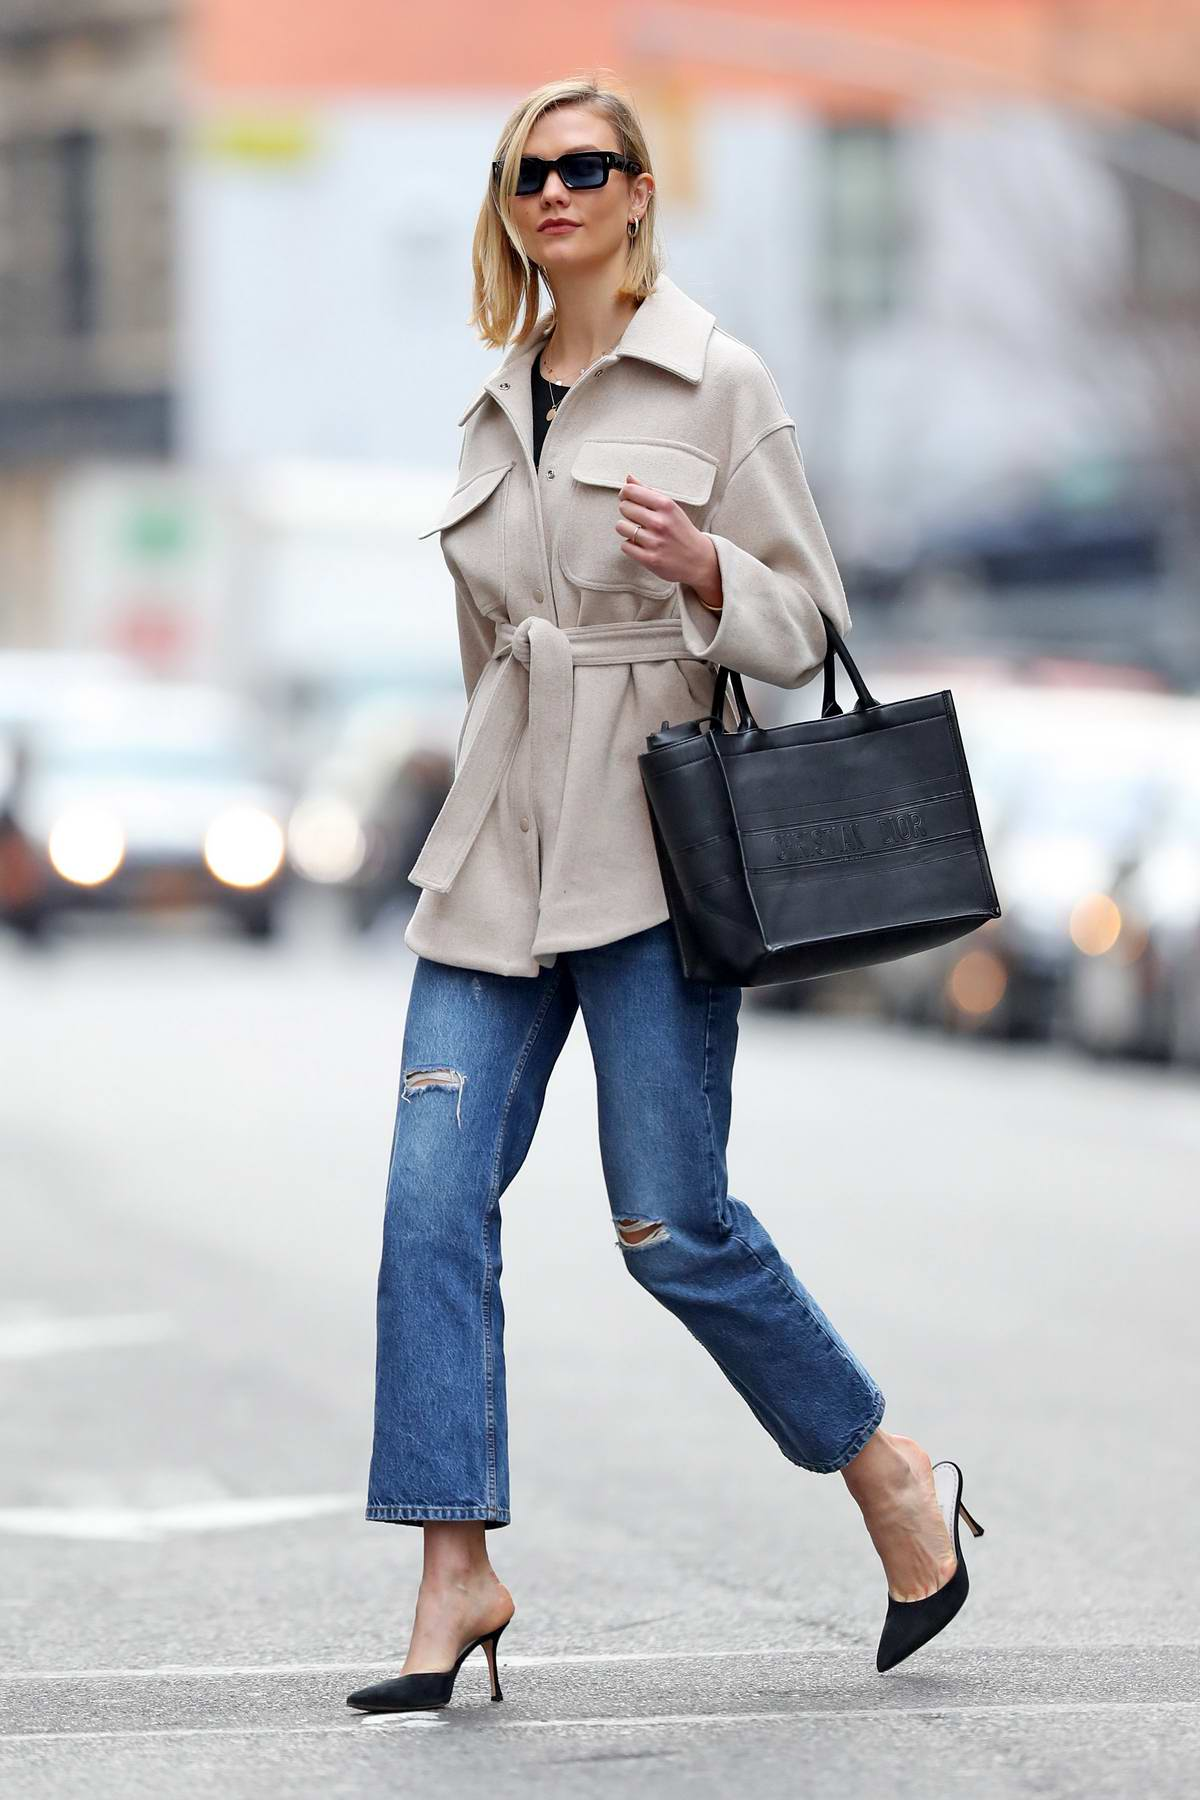 Karlie Kloss looks stylish in a beige jacket and jeans as she steps out in New York City